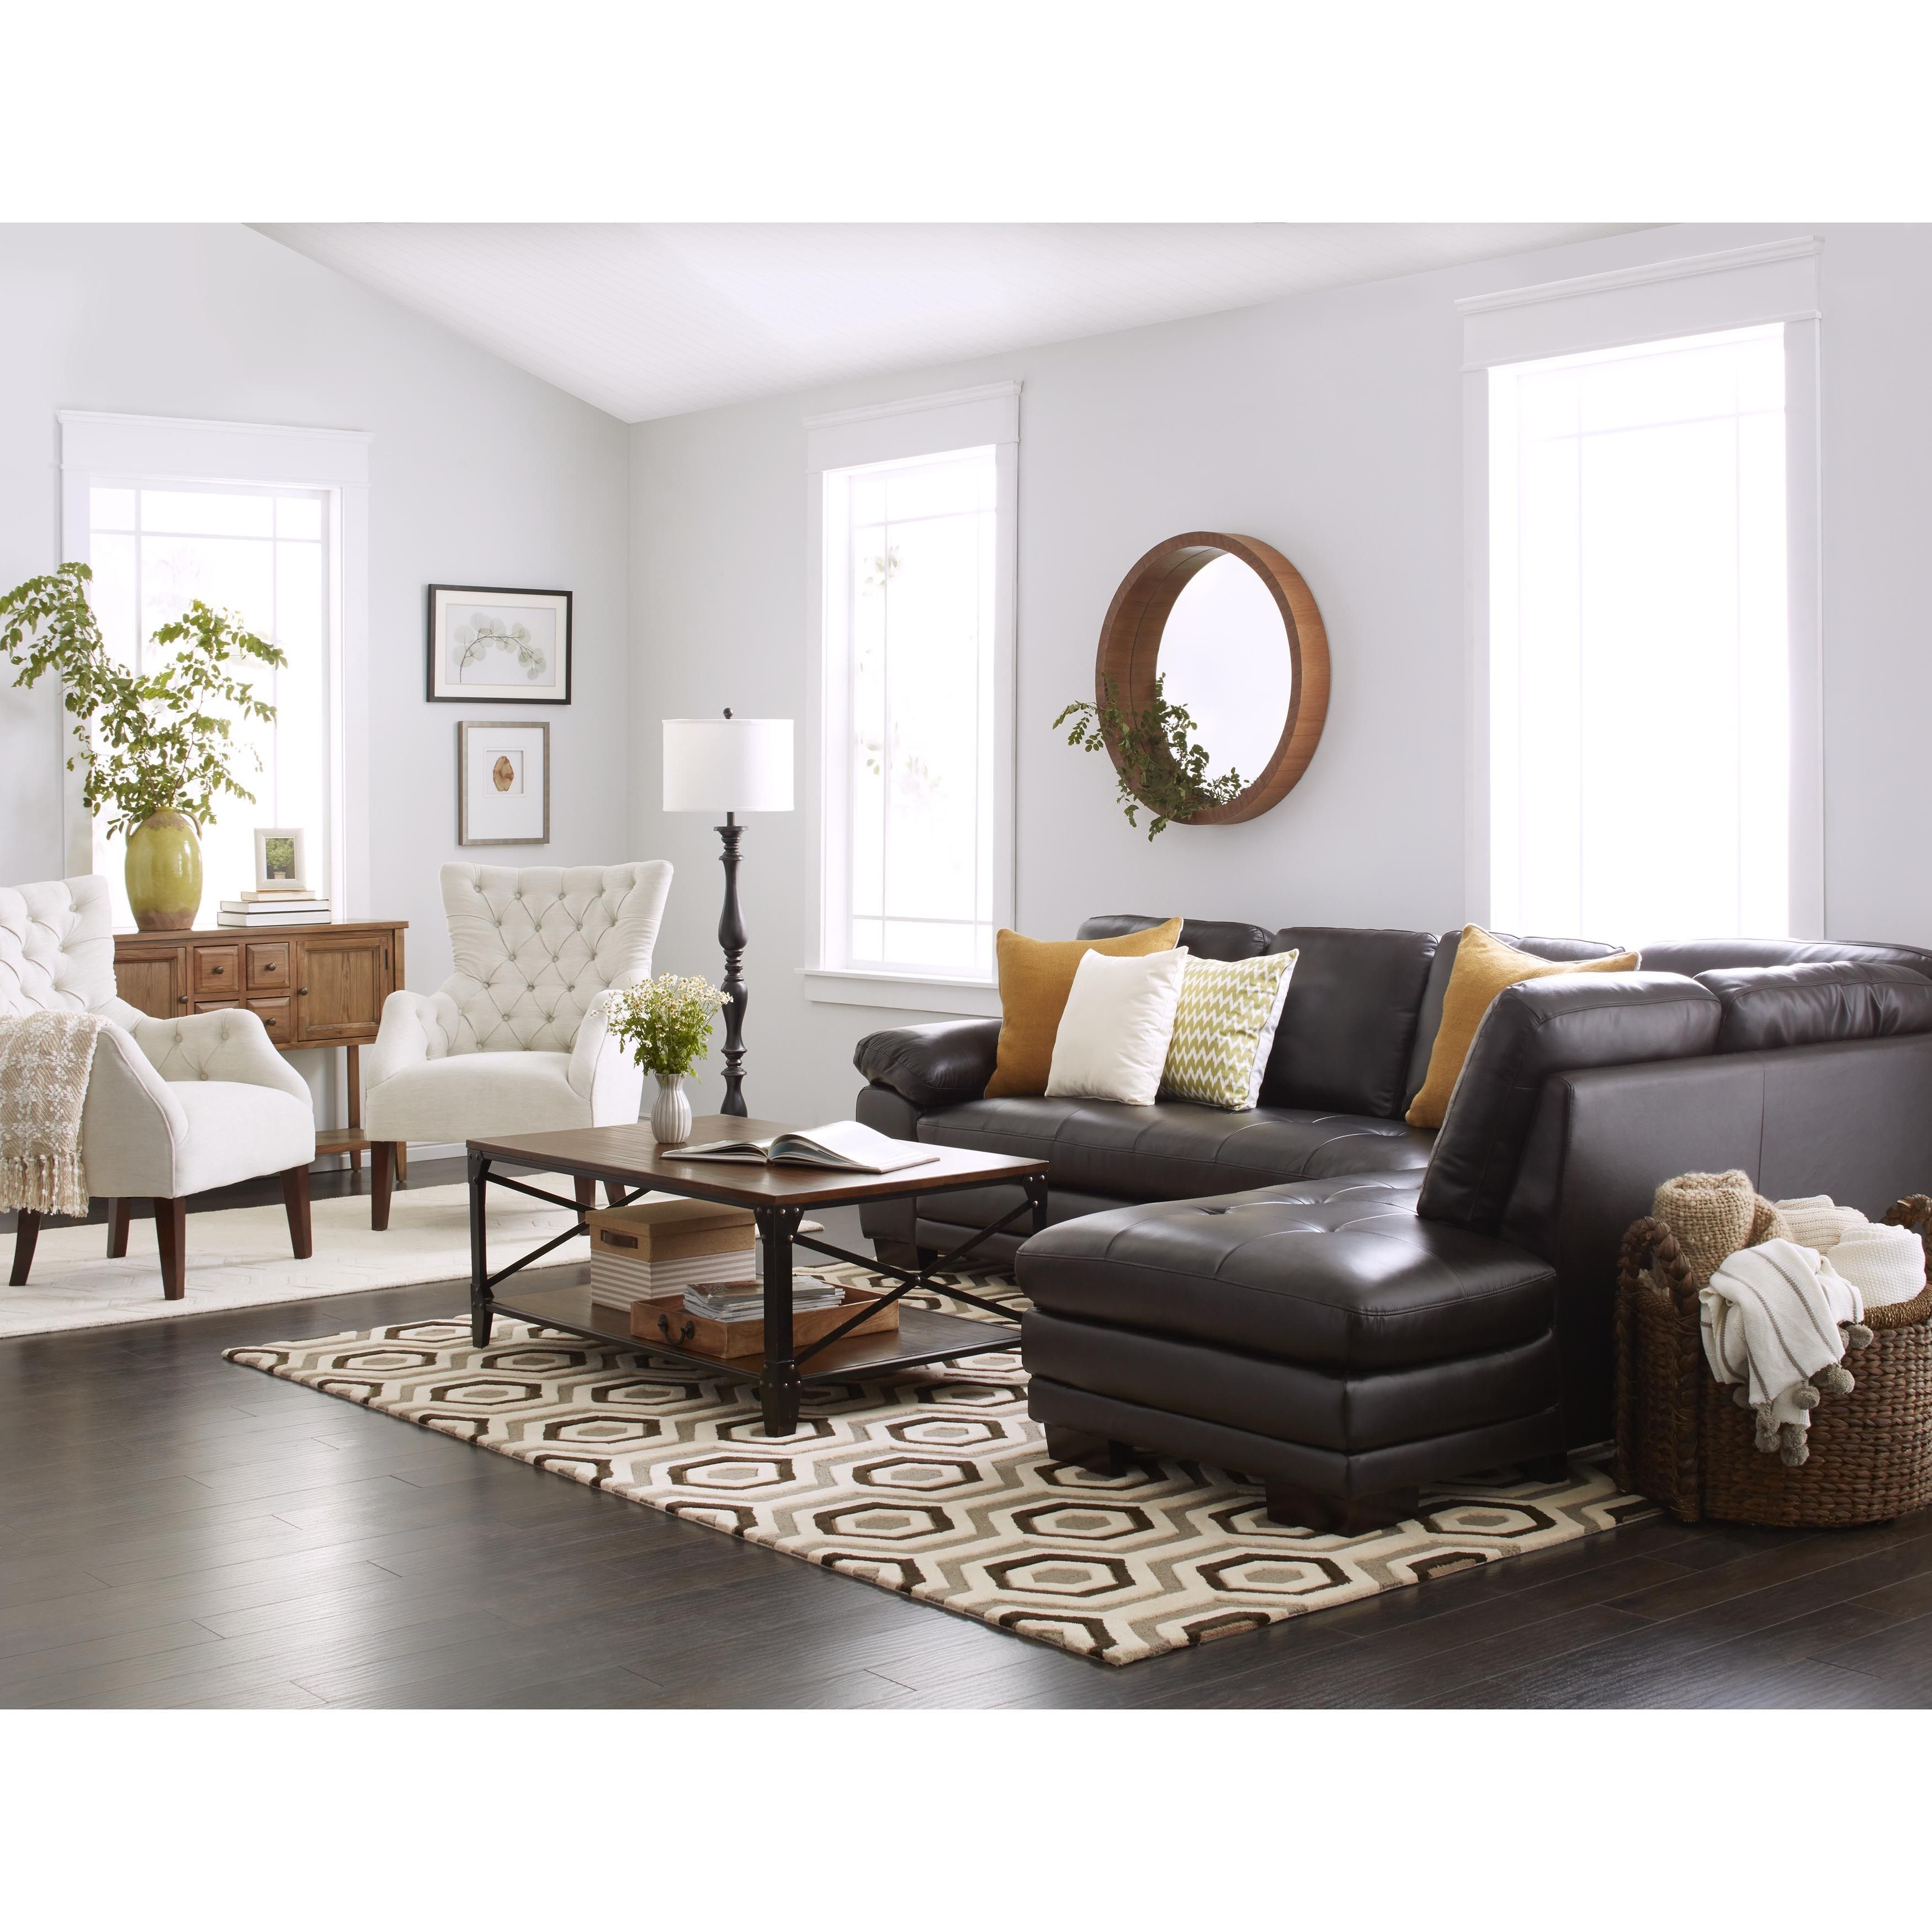 Everett Tufted Leather Settee In 2019: Abbyson Devonshire Leather Tufted Sectional (Brown)